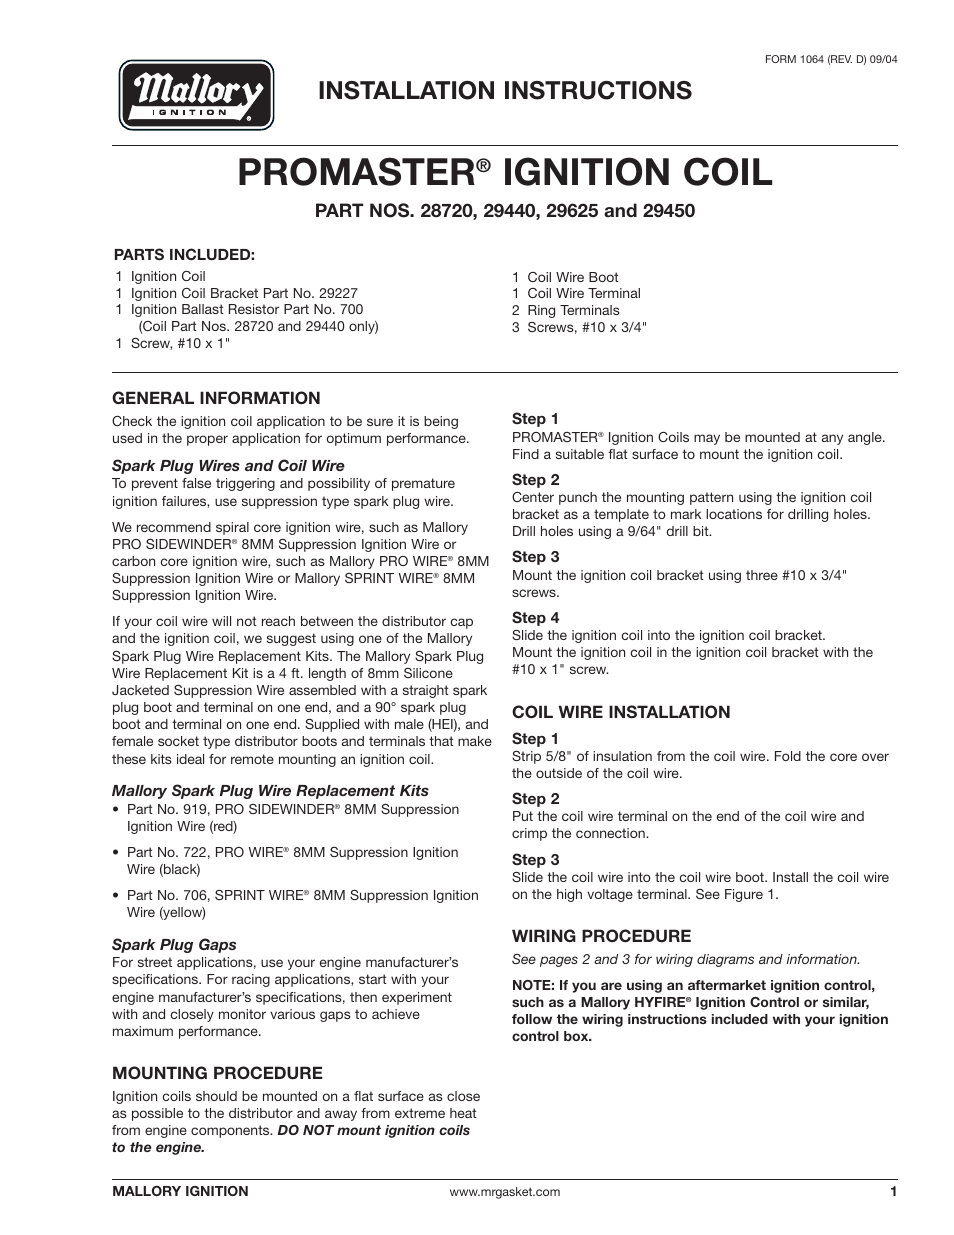 mallory ignition mallory promaster ignition coil 29440_29450_29625_29450 page1?resize\\\\\\\\\\\\\\\\\\\\\\\=665%2C861 accel points eliminator wiring diagram mallory ignition wiring accel points eliminator wiring diagram at reclaimingppi.co